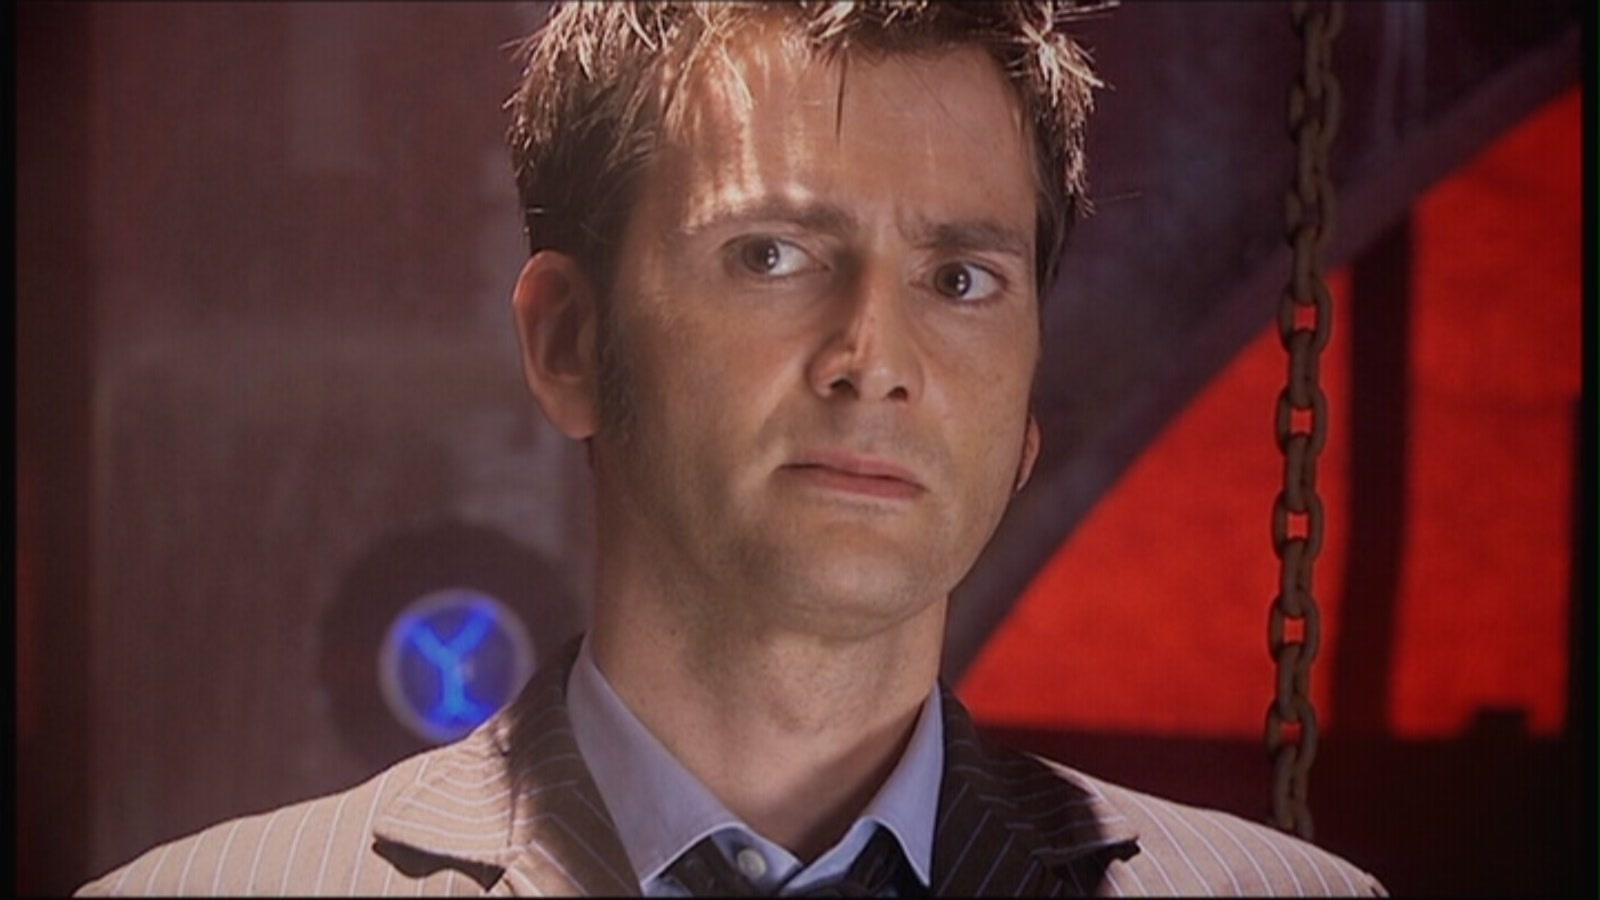 4x13 Journey's End - Doctor Who Image (21328524) - Fanpop